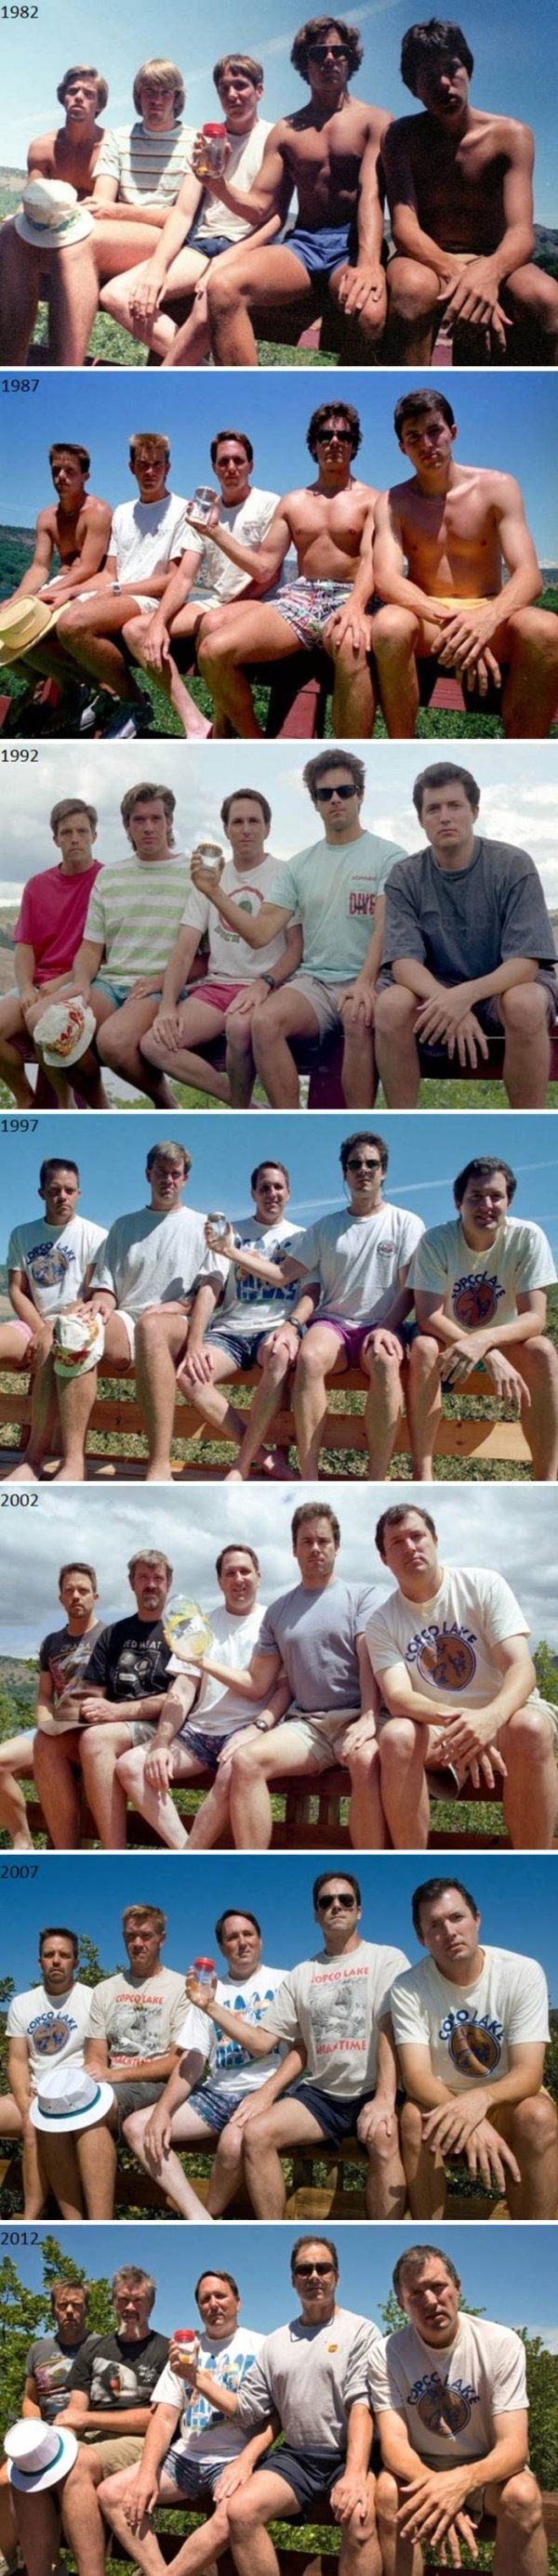 family photos then now same recreated funny 32 Then & now images prove that some people never change (40 Photos)